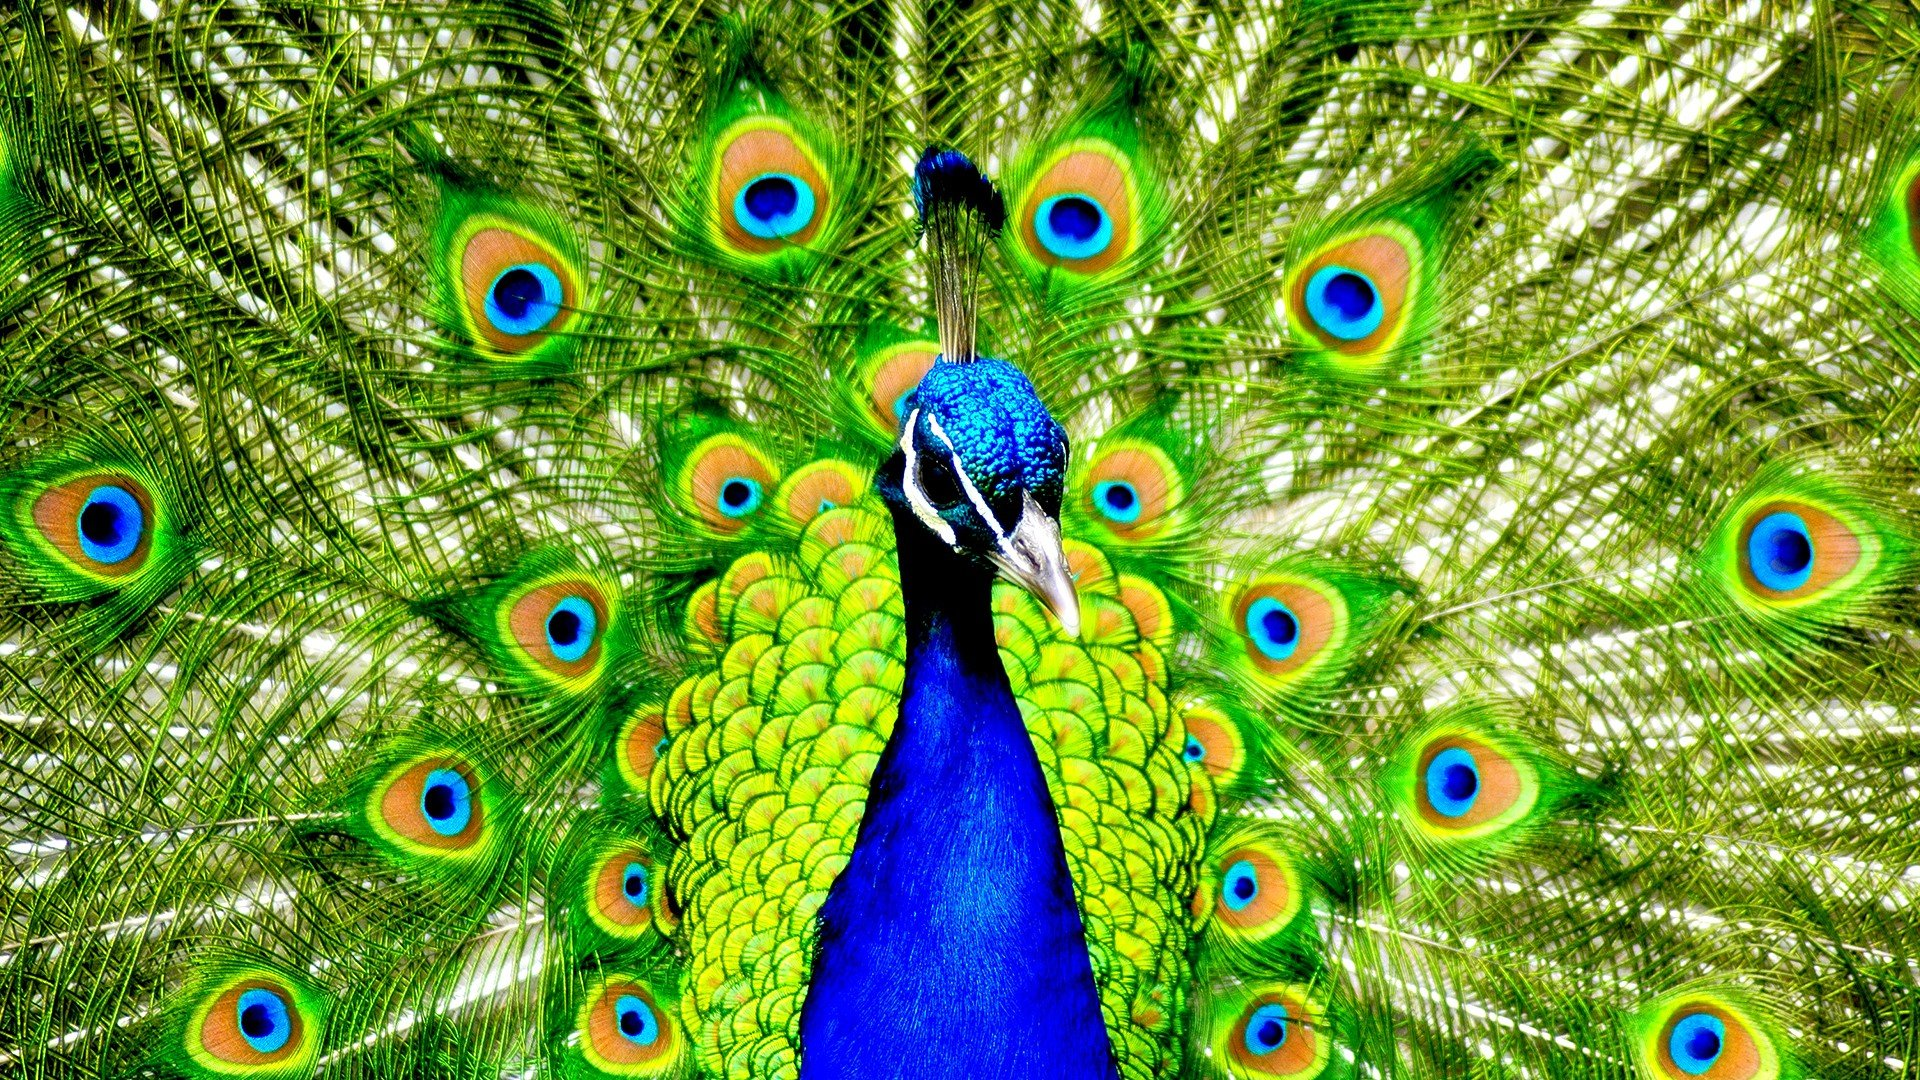 High resolution Peacock full hd 1920x1080 background ID:151809 for PC